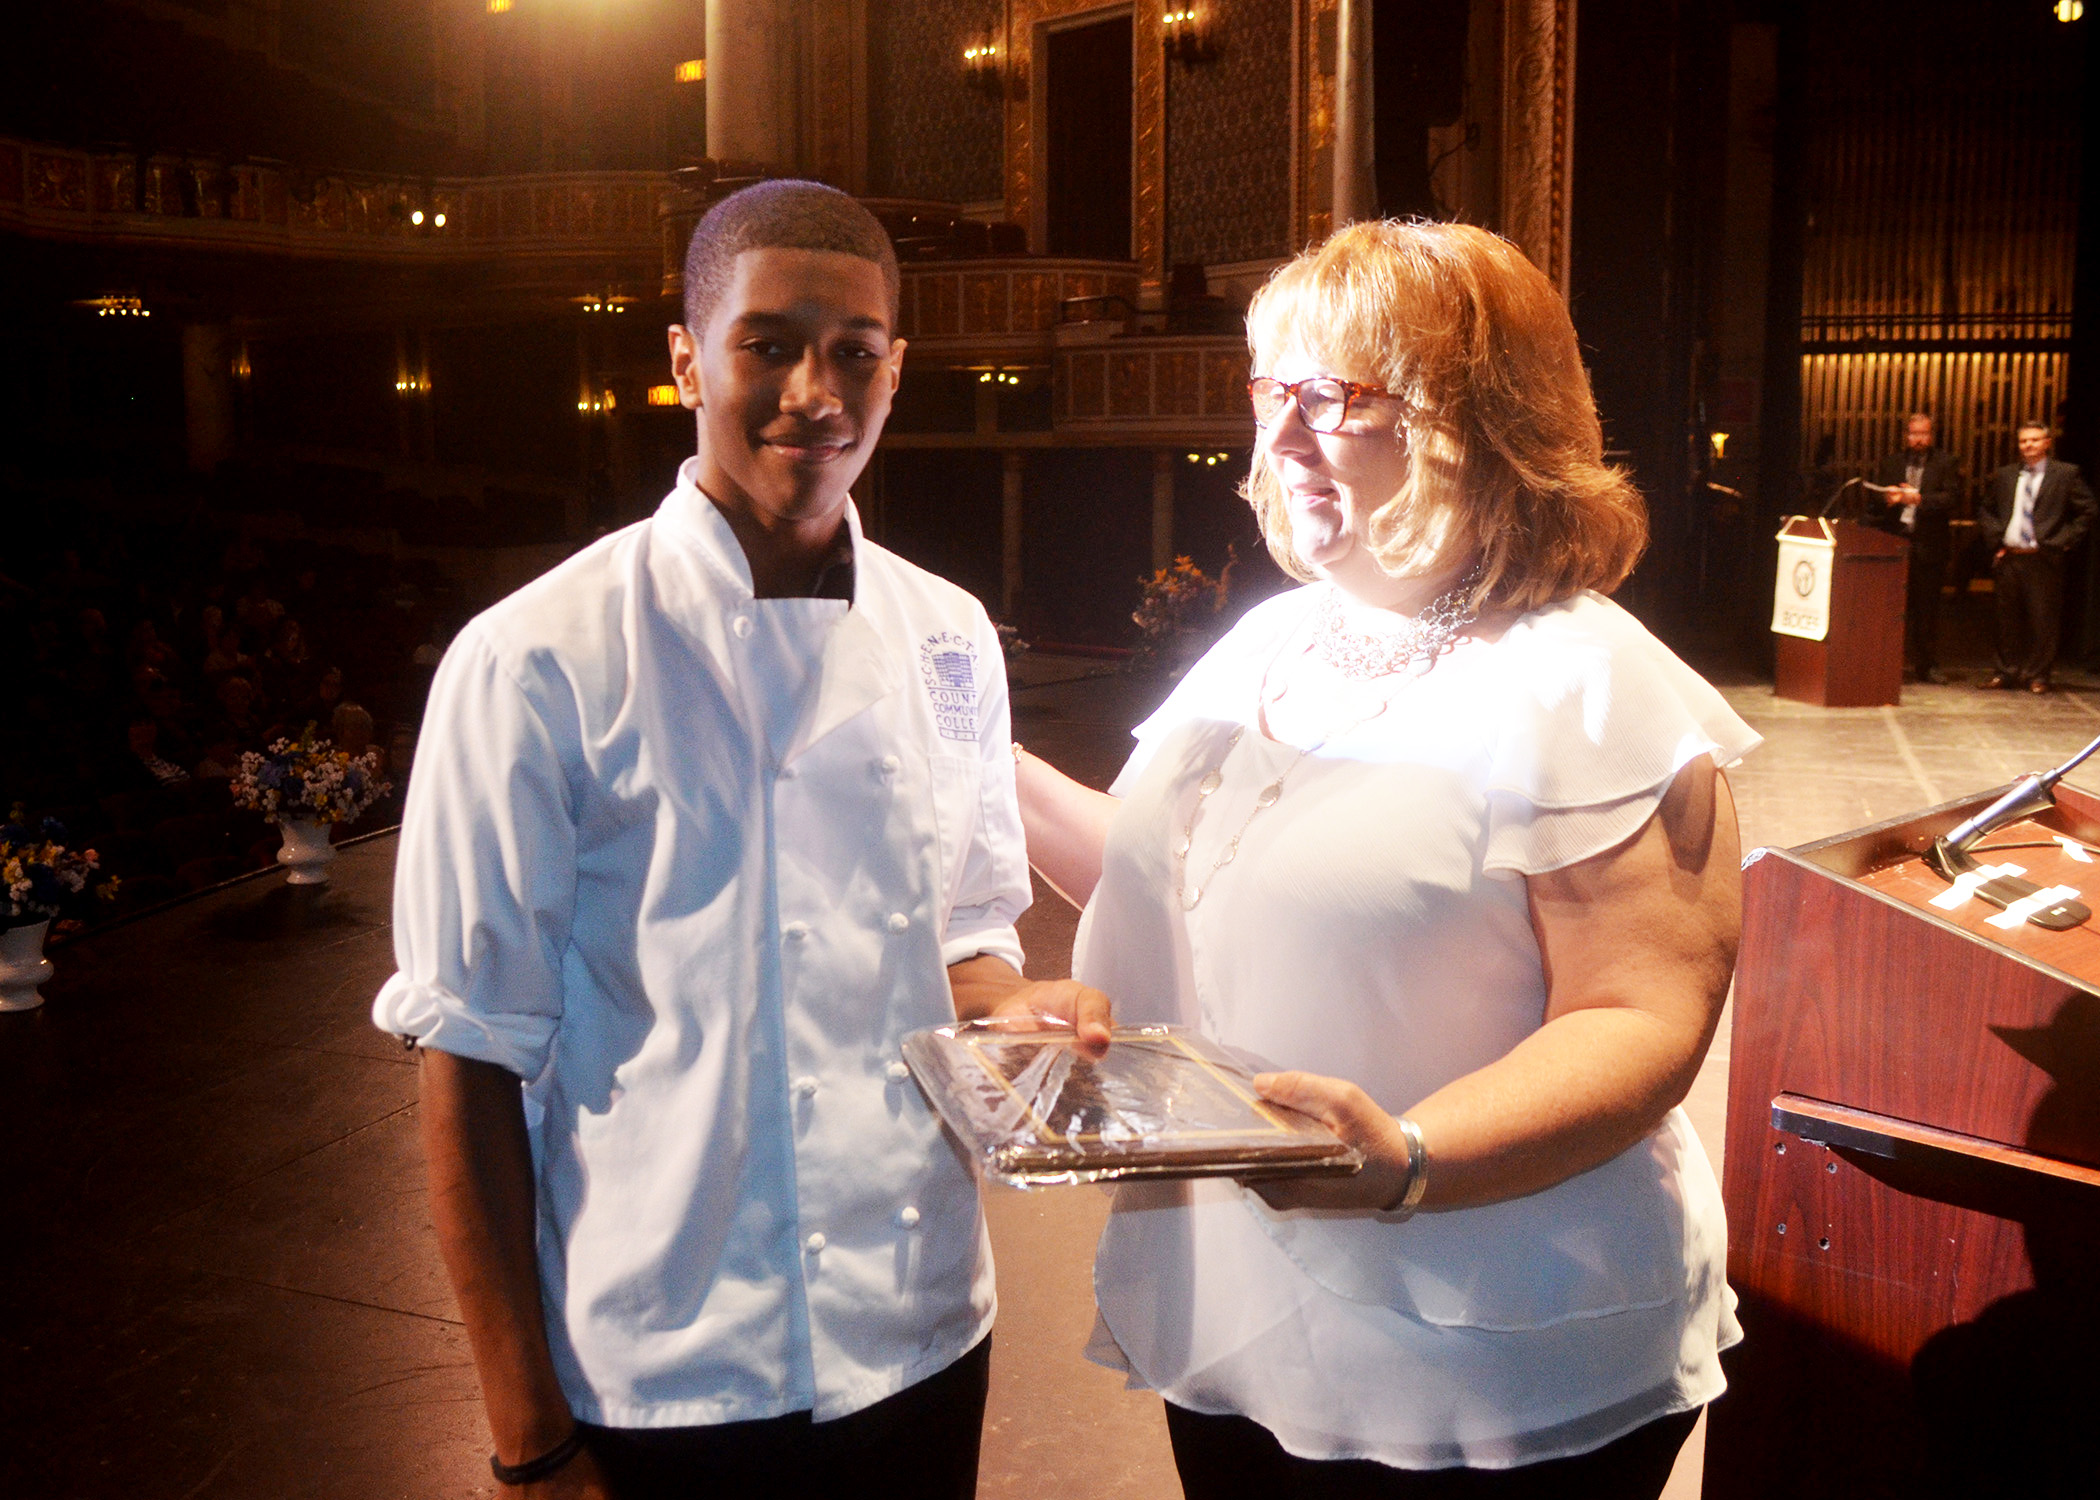 culinary student receives an award from his teacher